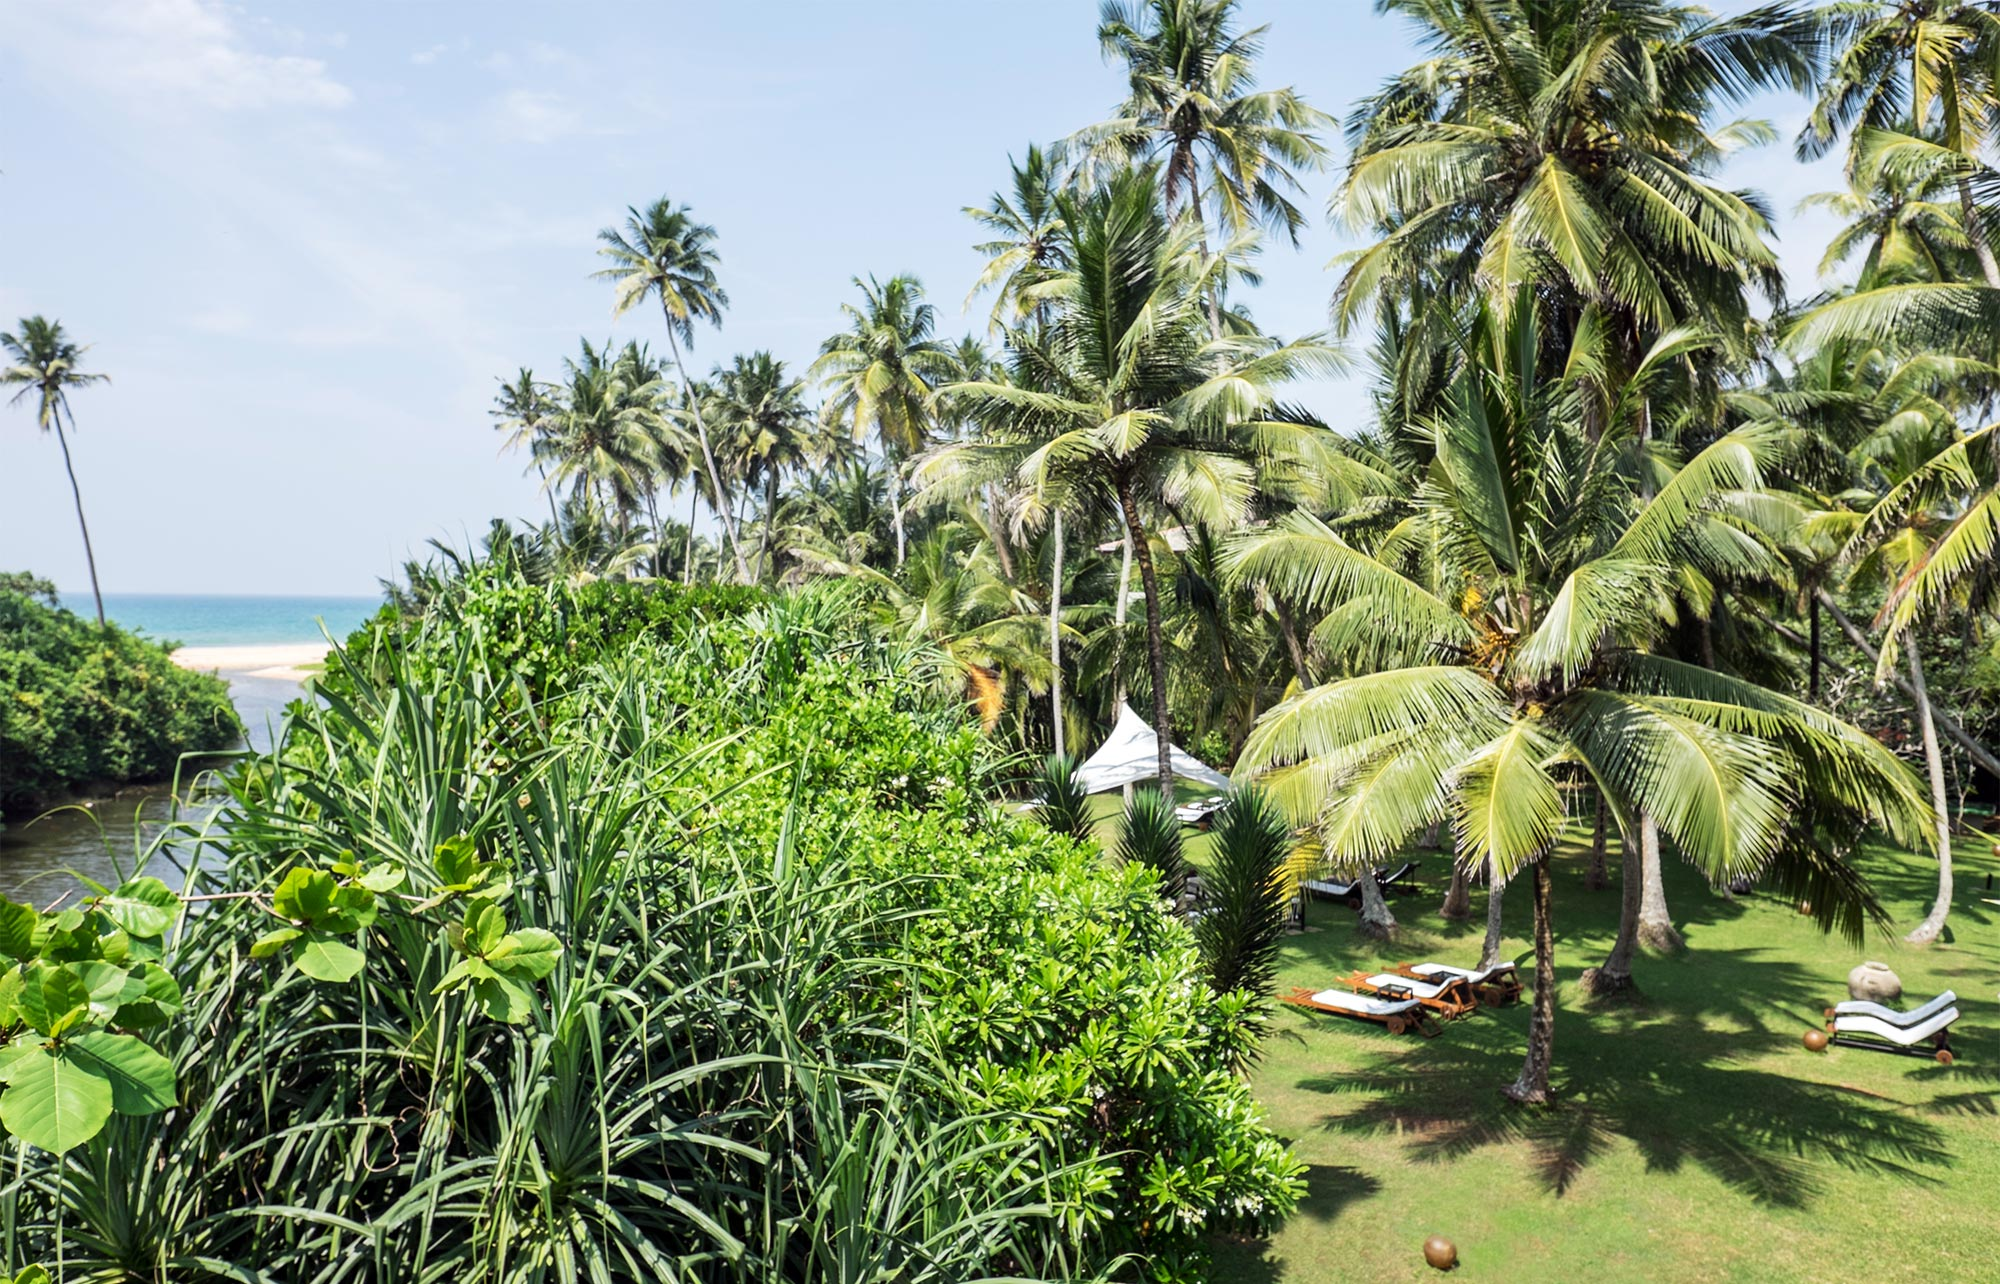 Gartenanlage des Ayurveda Resorts der one world foundation in Ahungalla, Sri Lanka, Foto: Andrea Alessandri